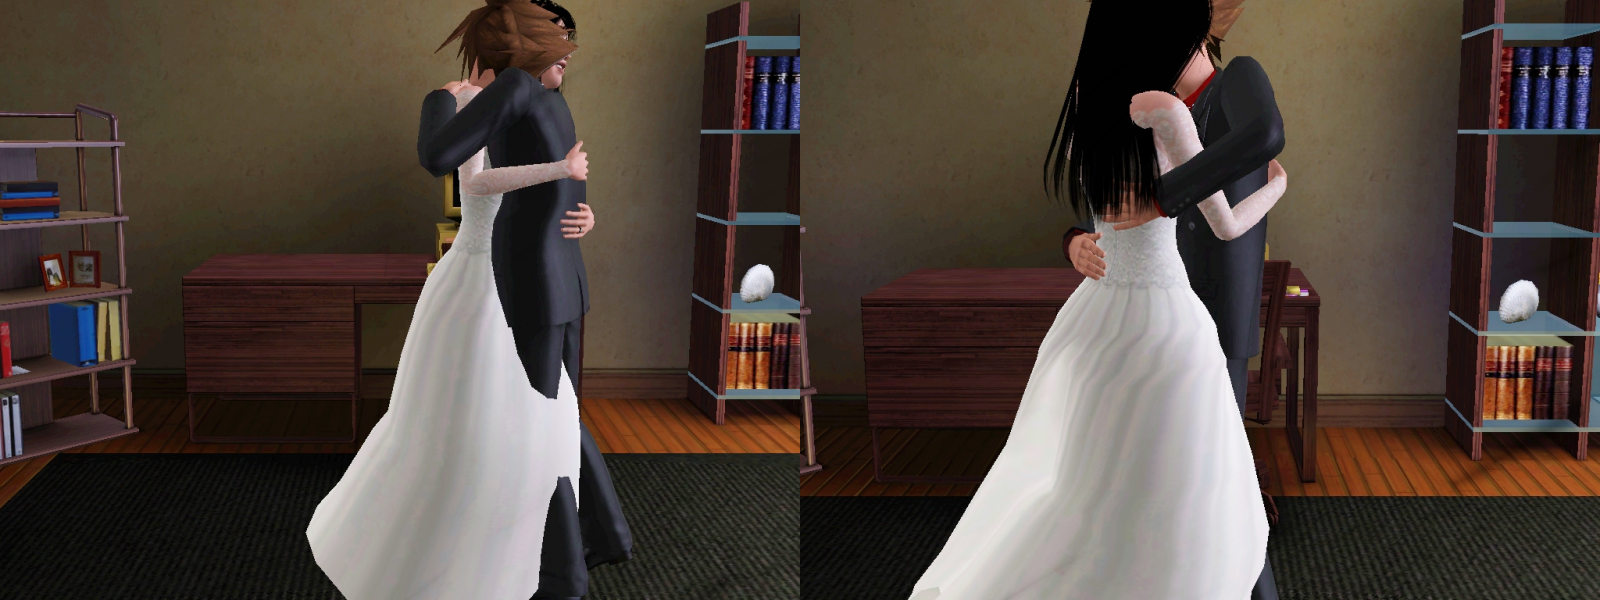 me and sora in wedding costume the sims 3